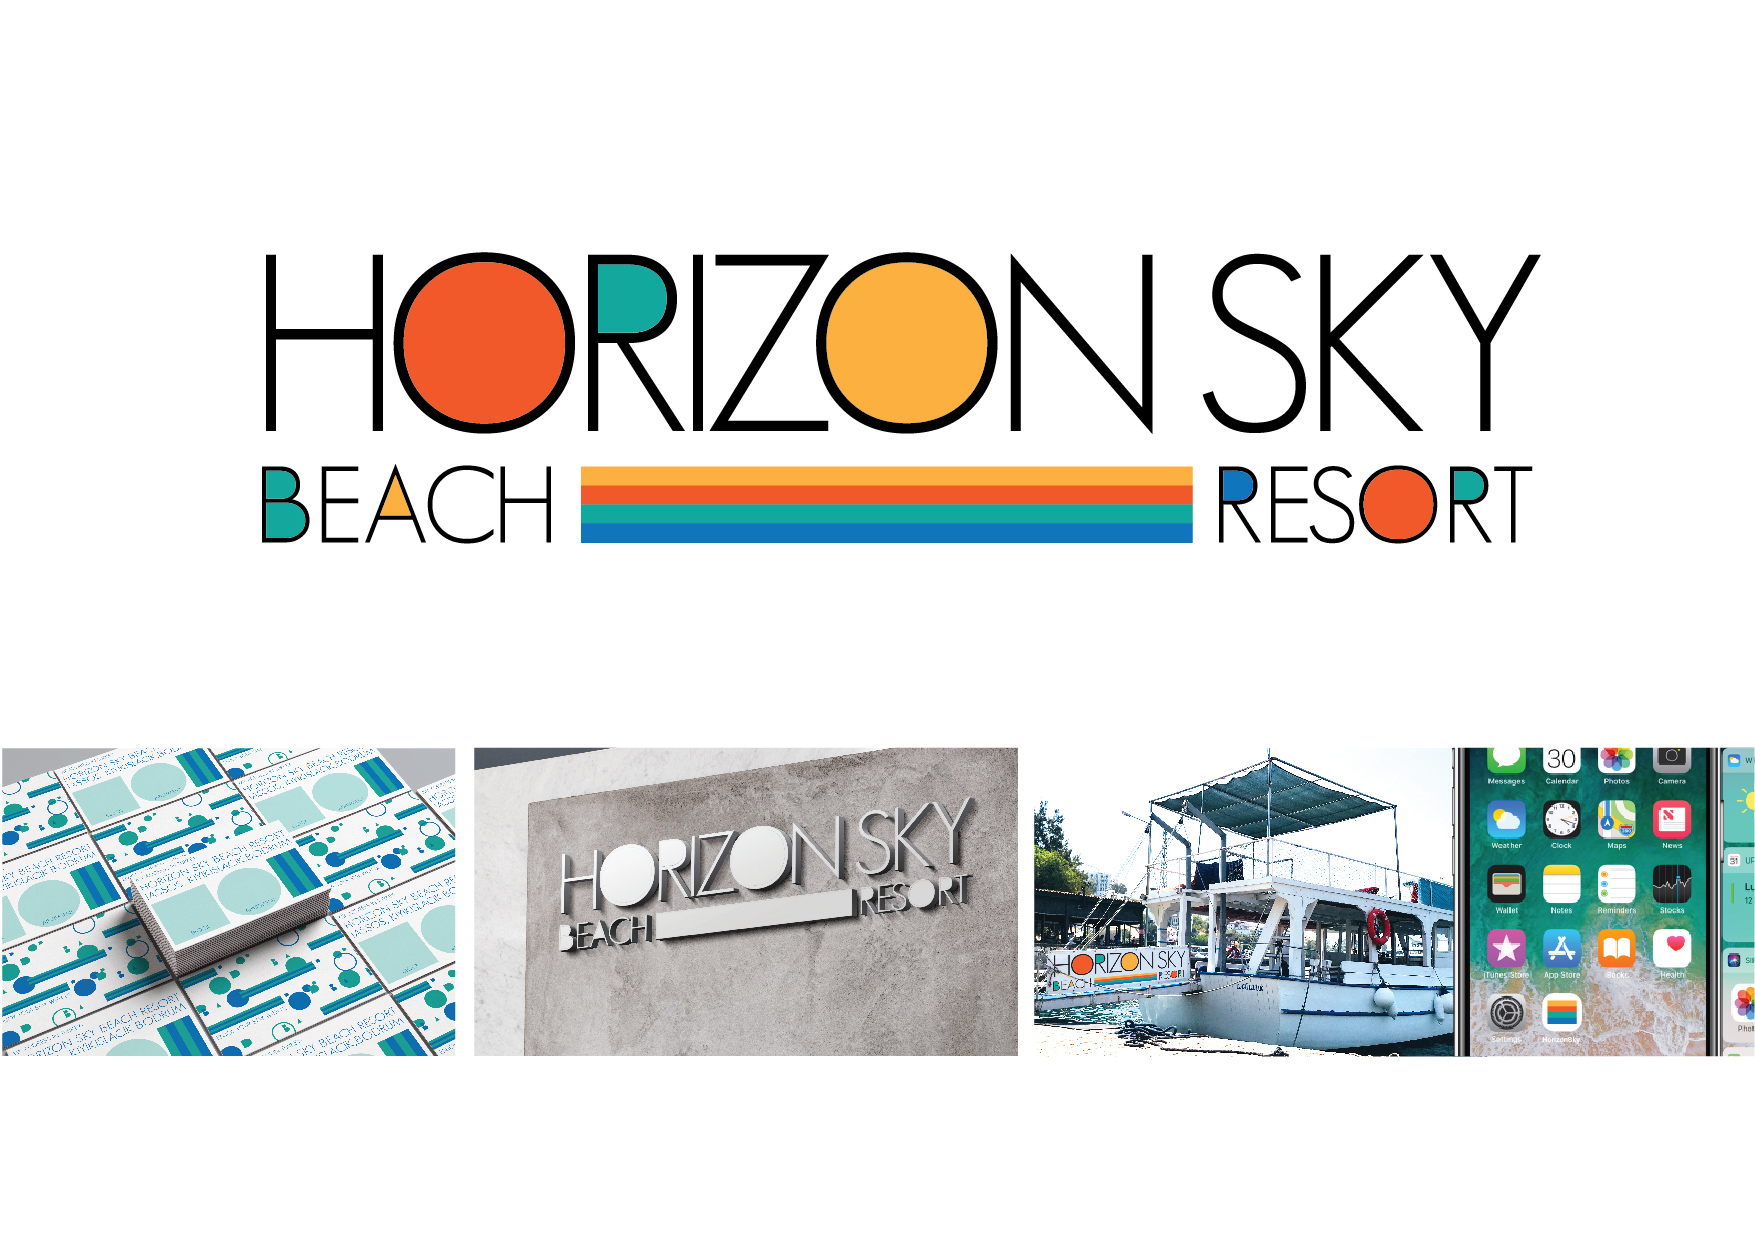 HORIZON SKY BEACH RESORT